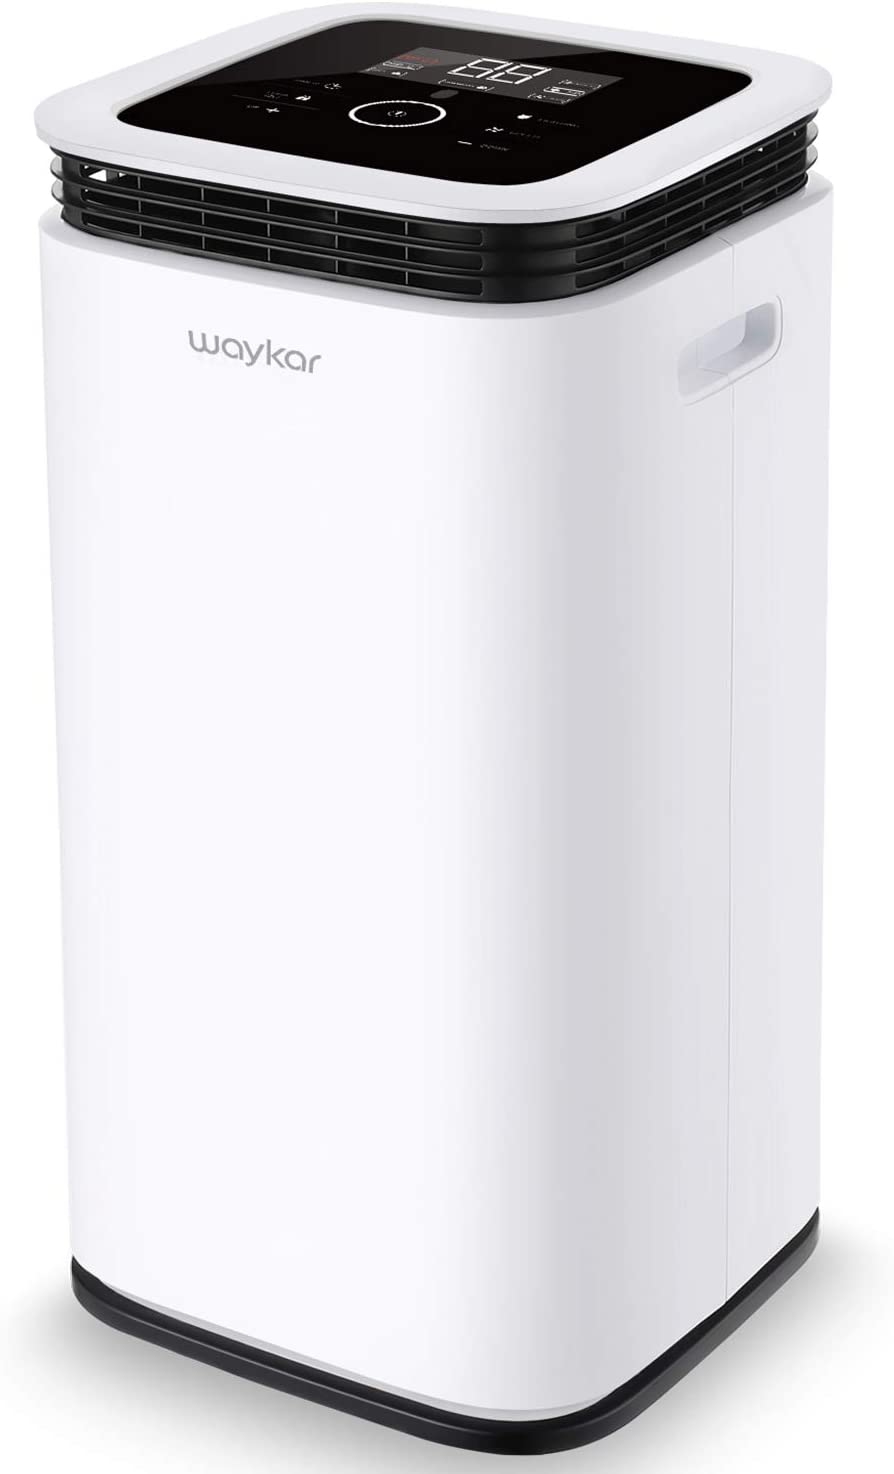 Waykar 70 Pint Dehumidifier for Home Basements Bedroom Garage, 9 Gallons Day Working Capacity, Four Air Outlets, with 1.18 Gallon Water Tank, Continuous Drain Hose and Wheel Spaces up to 4500 Sq Ft